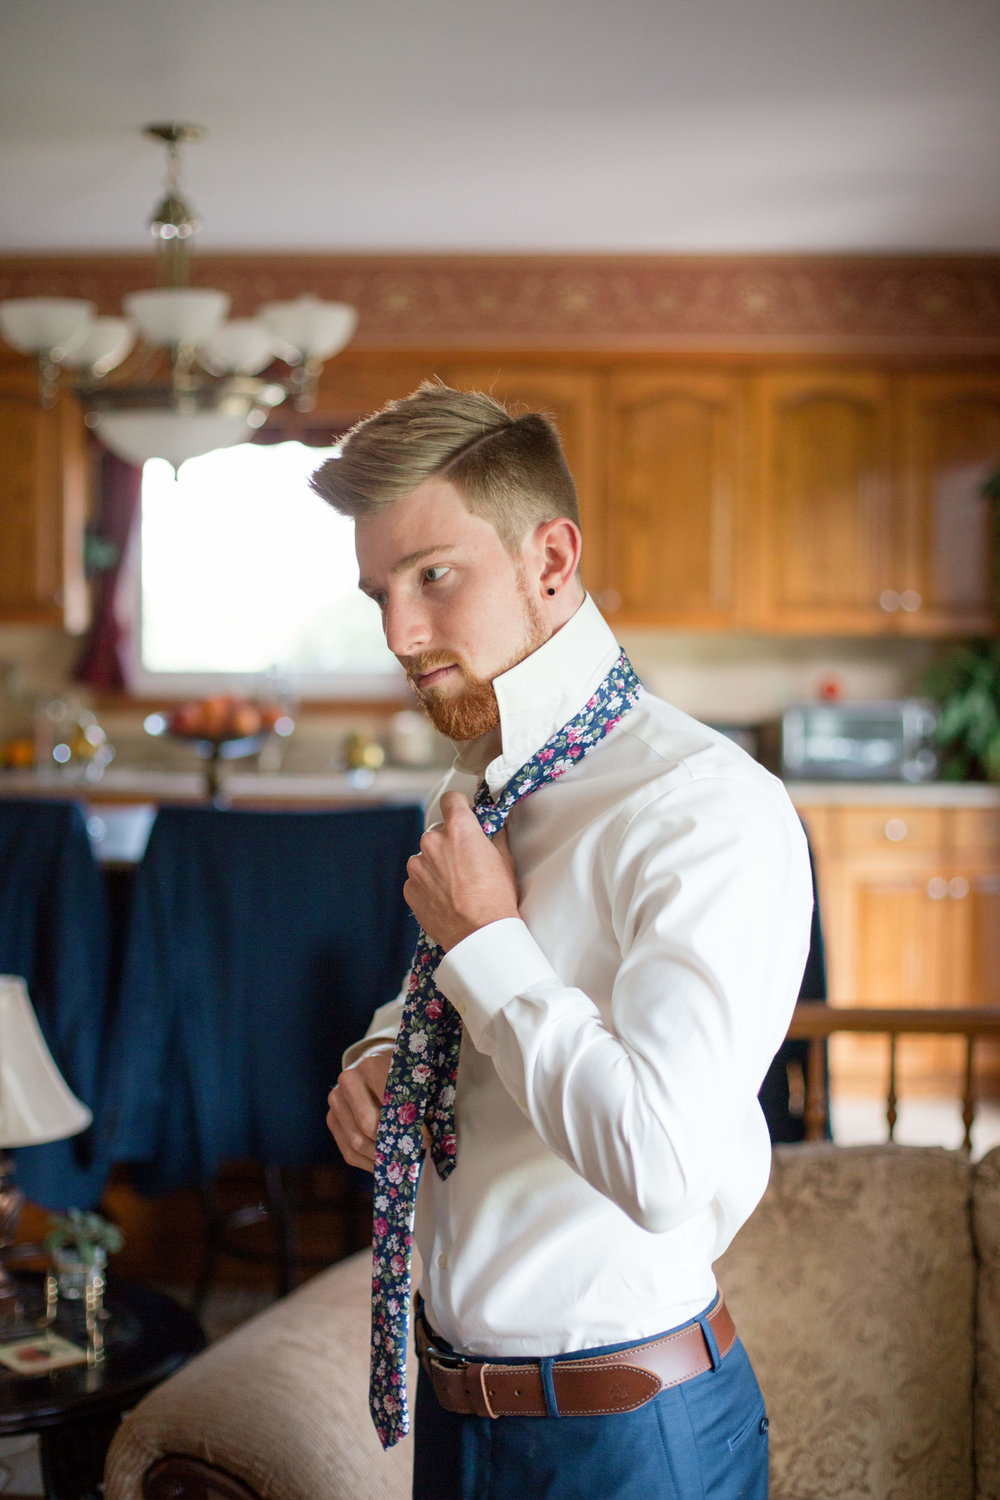 Maddy___Brandon___Daniel_Ricci_Weddings_High_Res._Finals_35.jpg